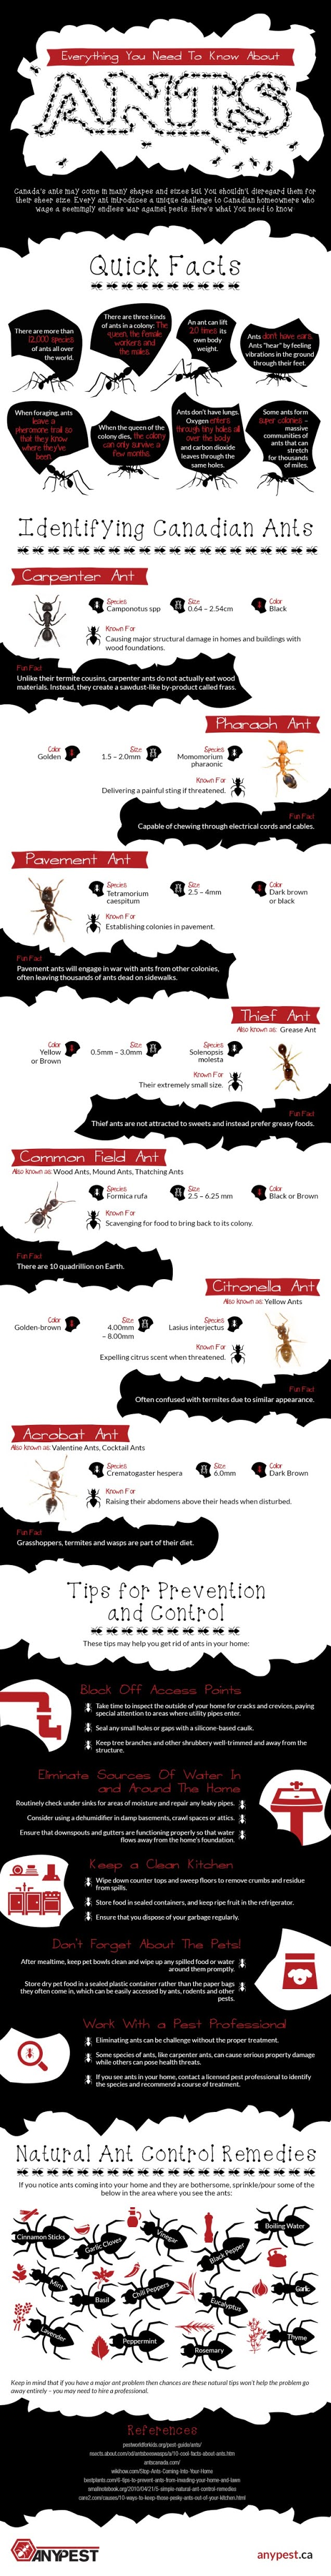 Everything You Need To Know About Ants #infographic